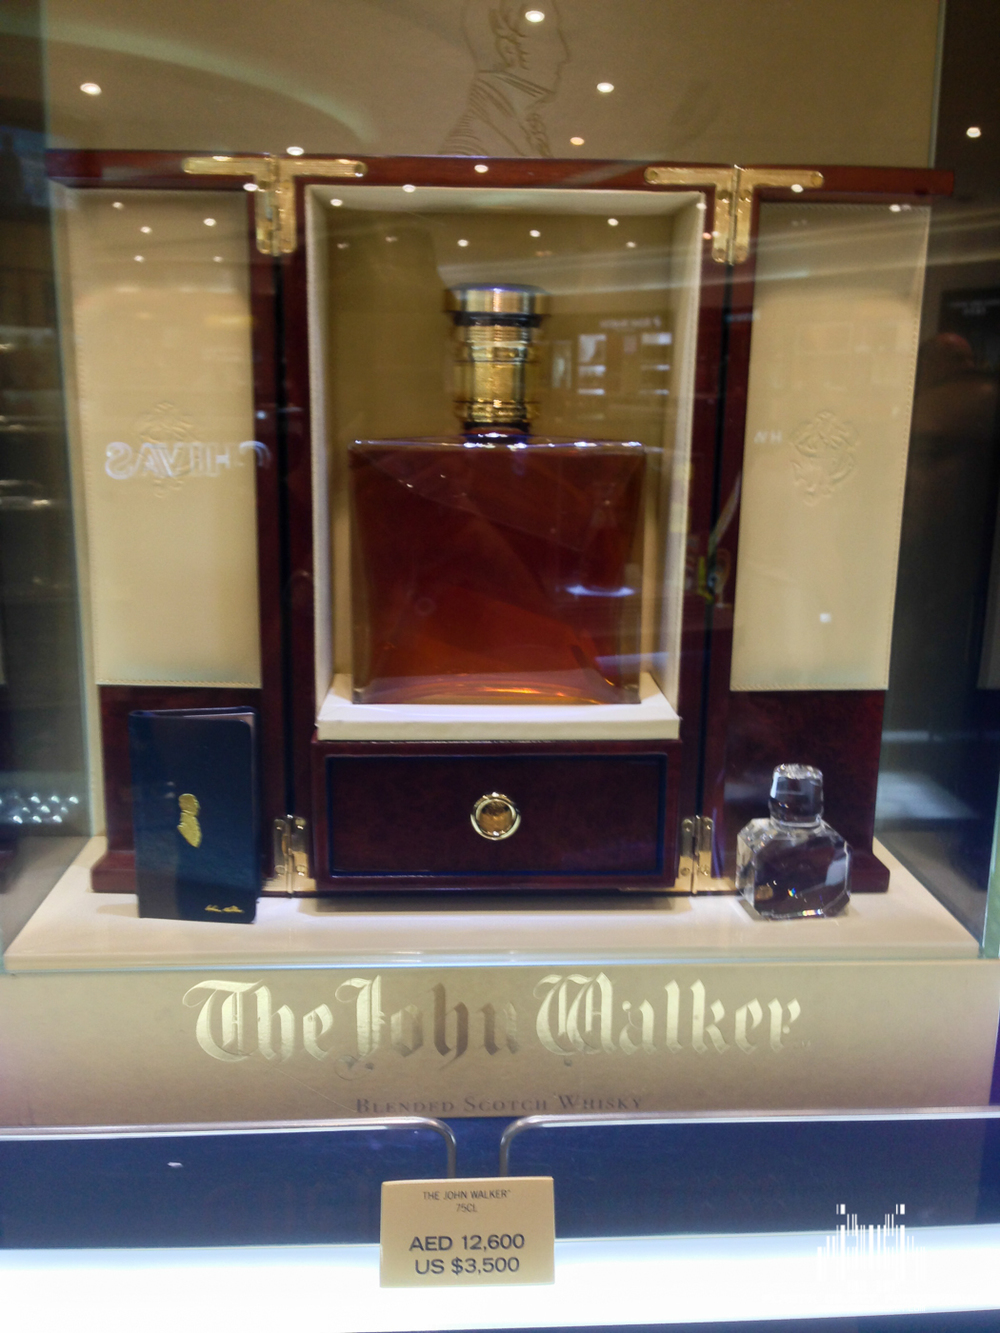 A nice $3500 bottle of Johnny Walker in the Dubai Duty Free store.